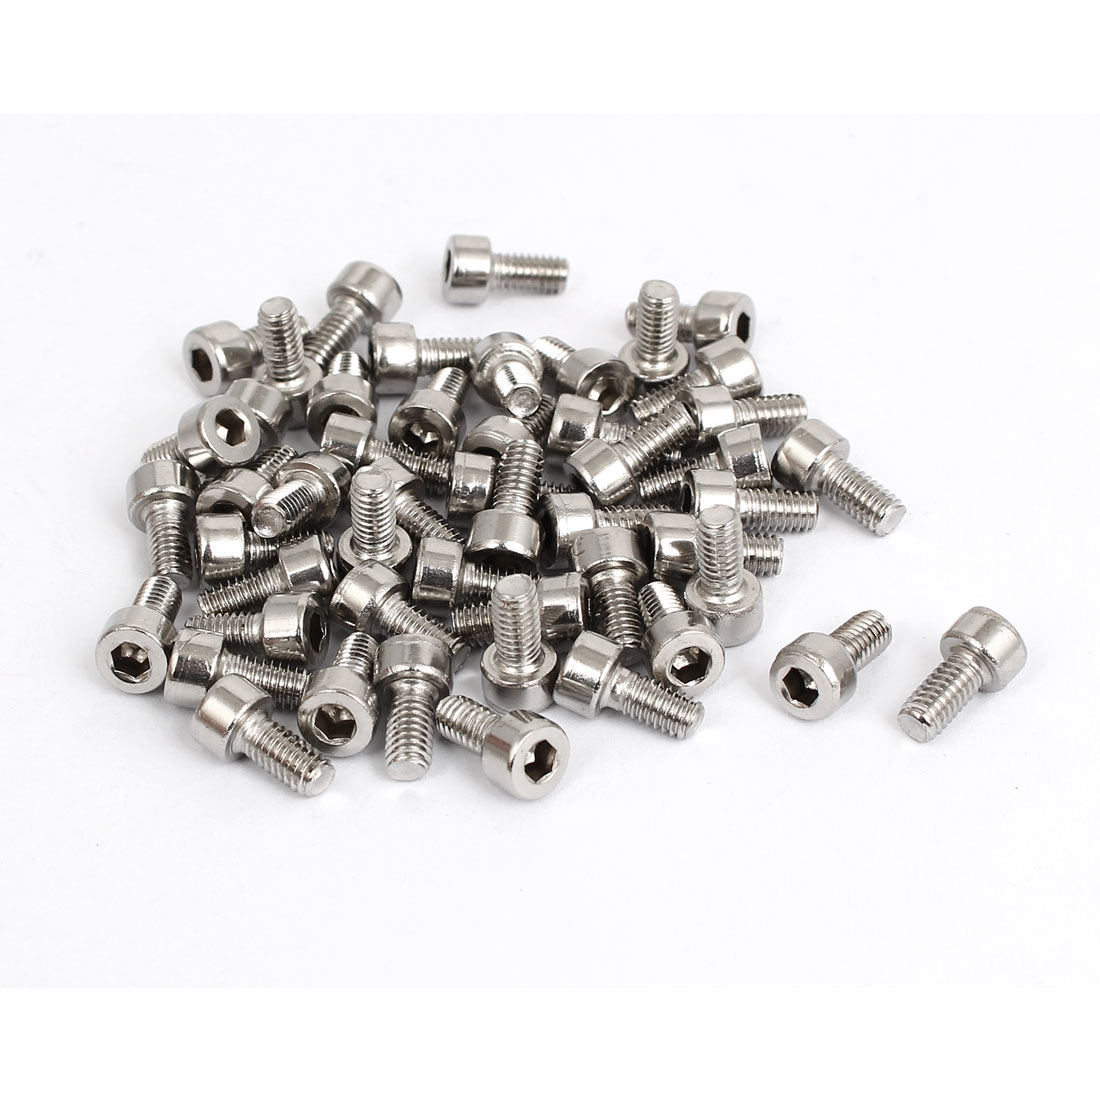 50pcs 3mm Stainless Steel Hex Key Socket Head Cap Screws Bolts M4x0.7mmx8mm